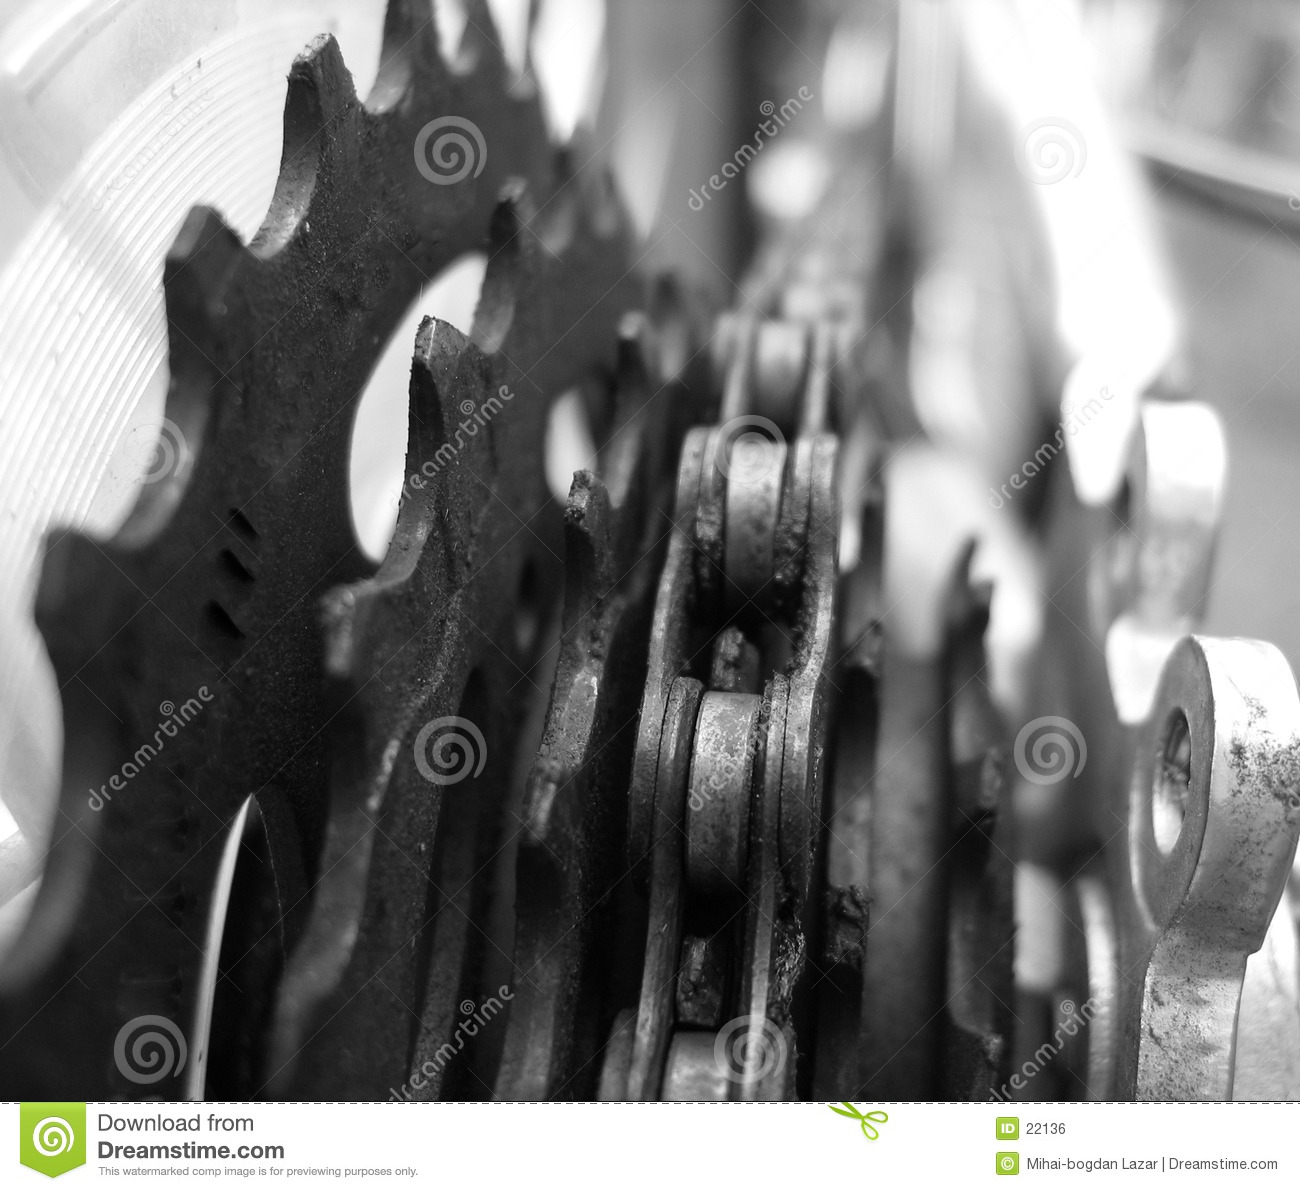 Bicycle chain detail